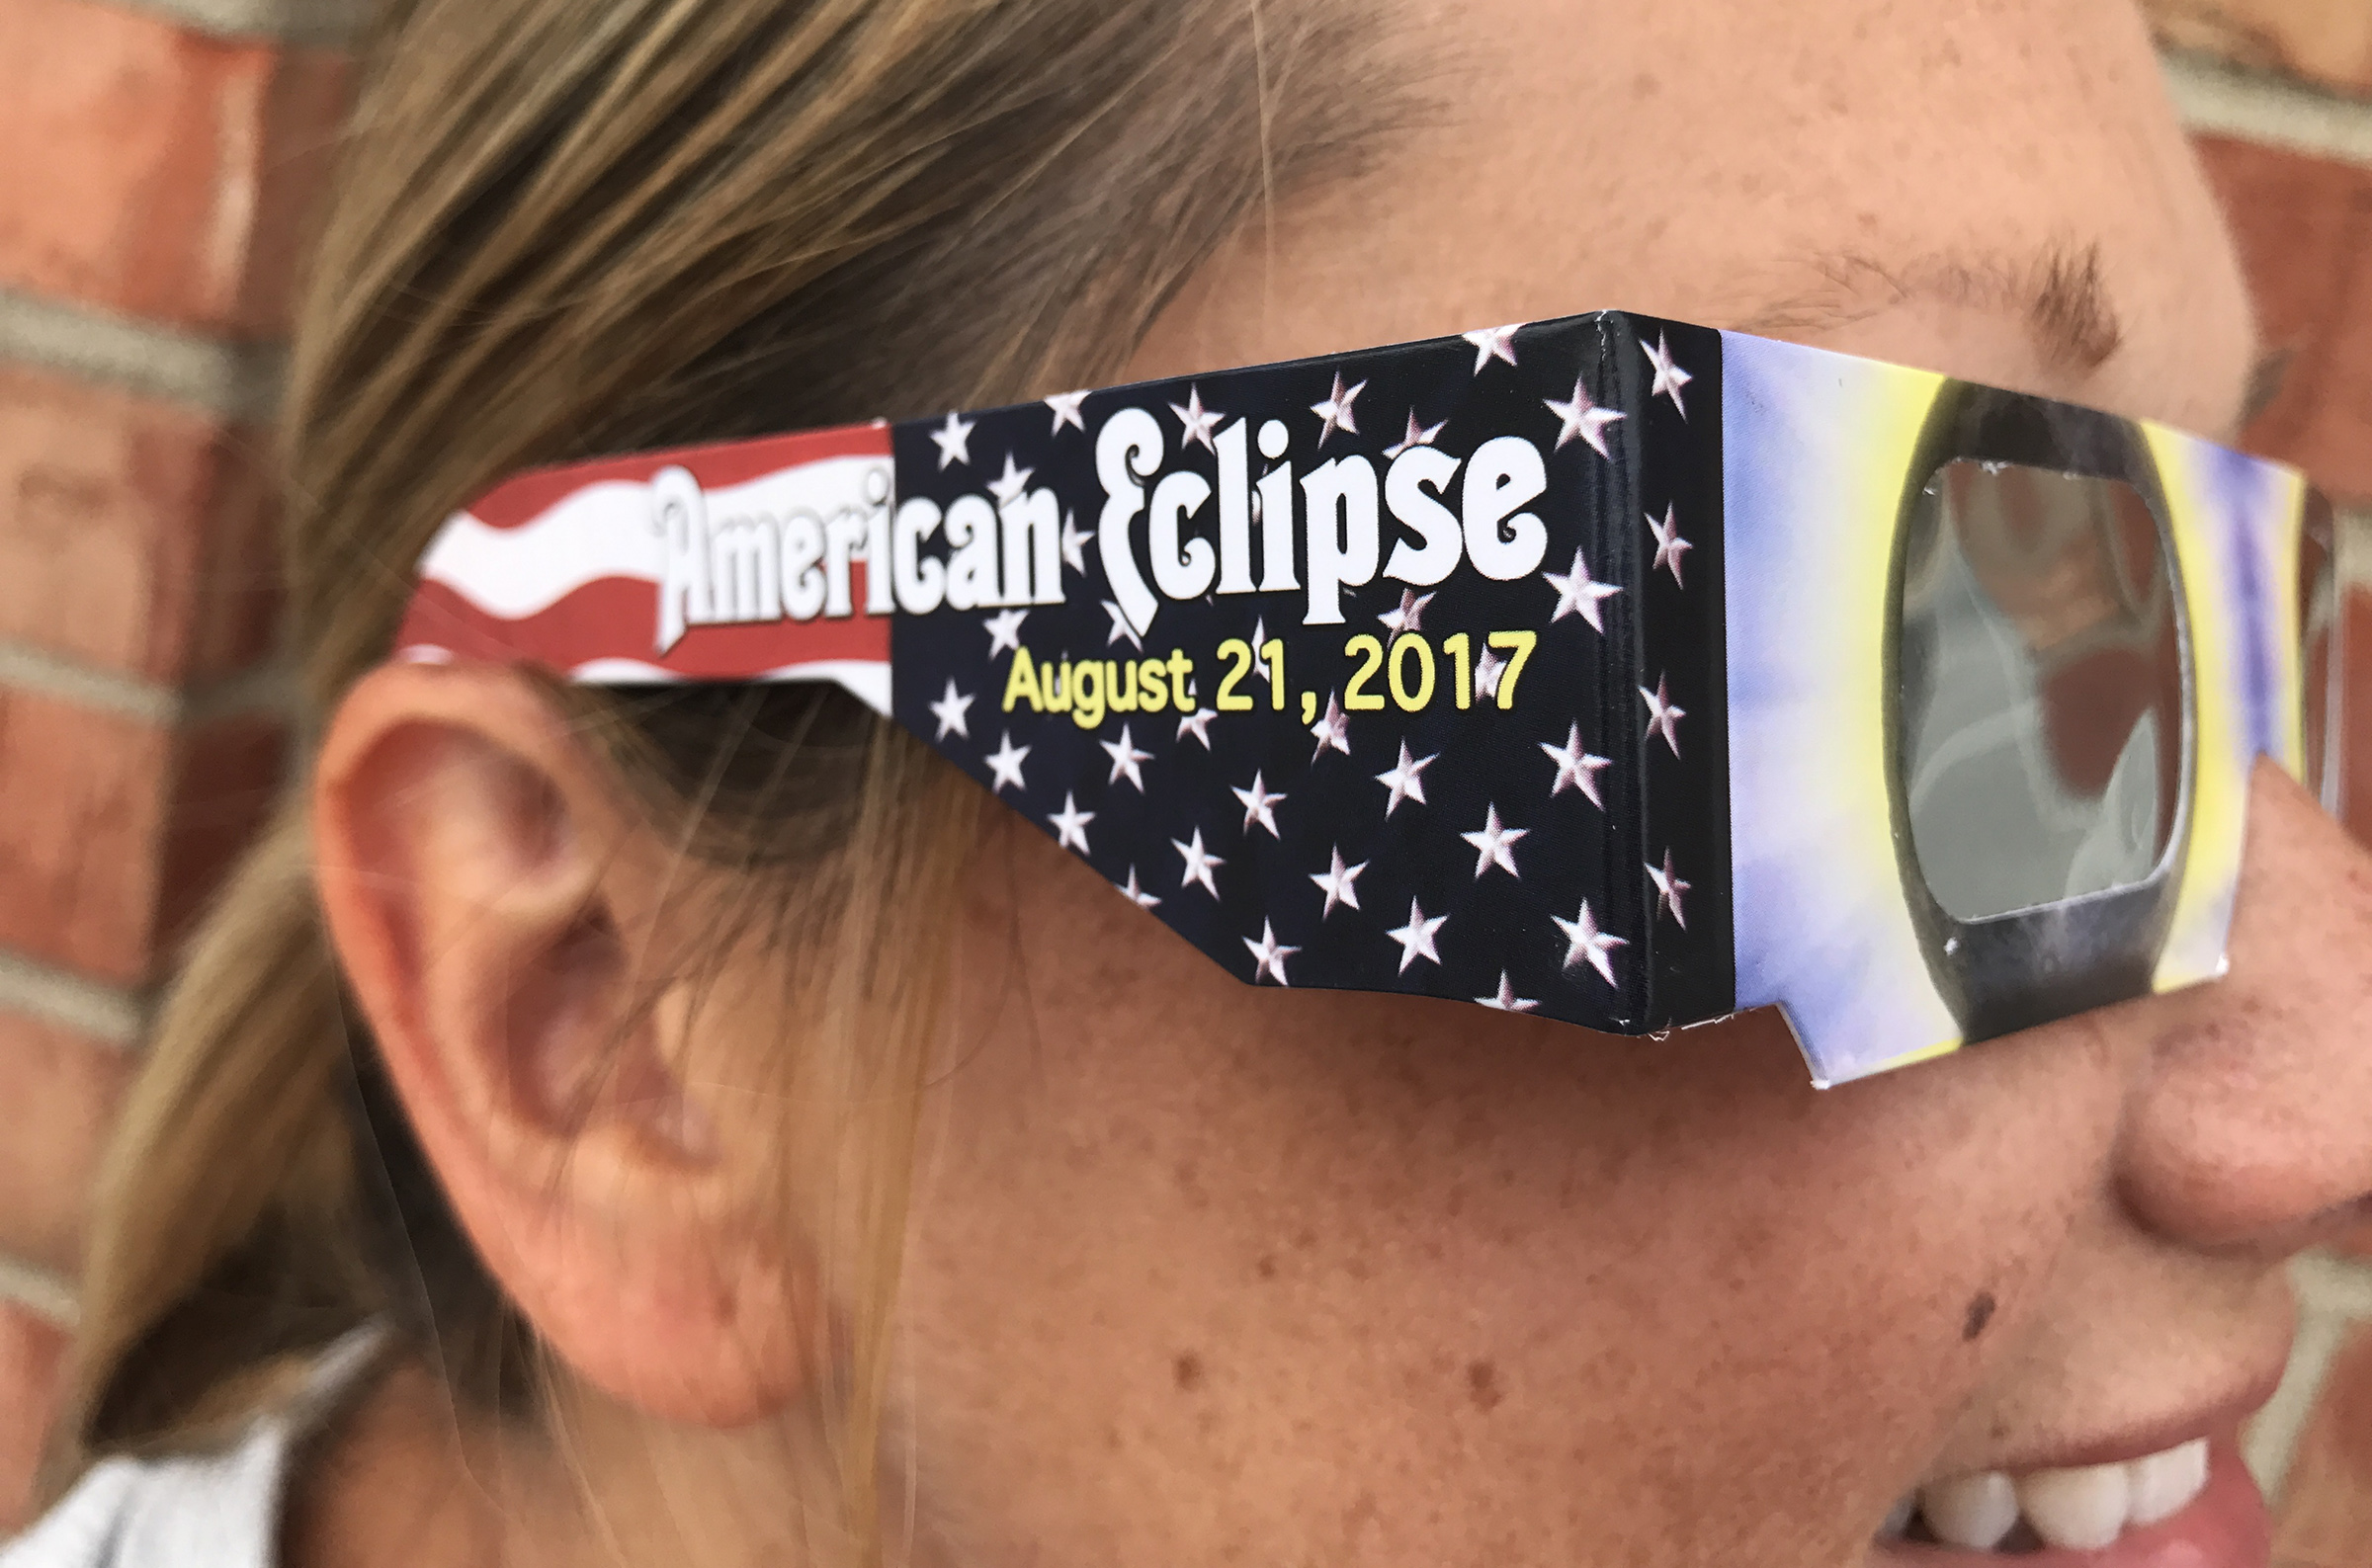 Certified eclipse glasses will be provided